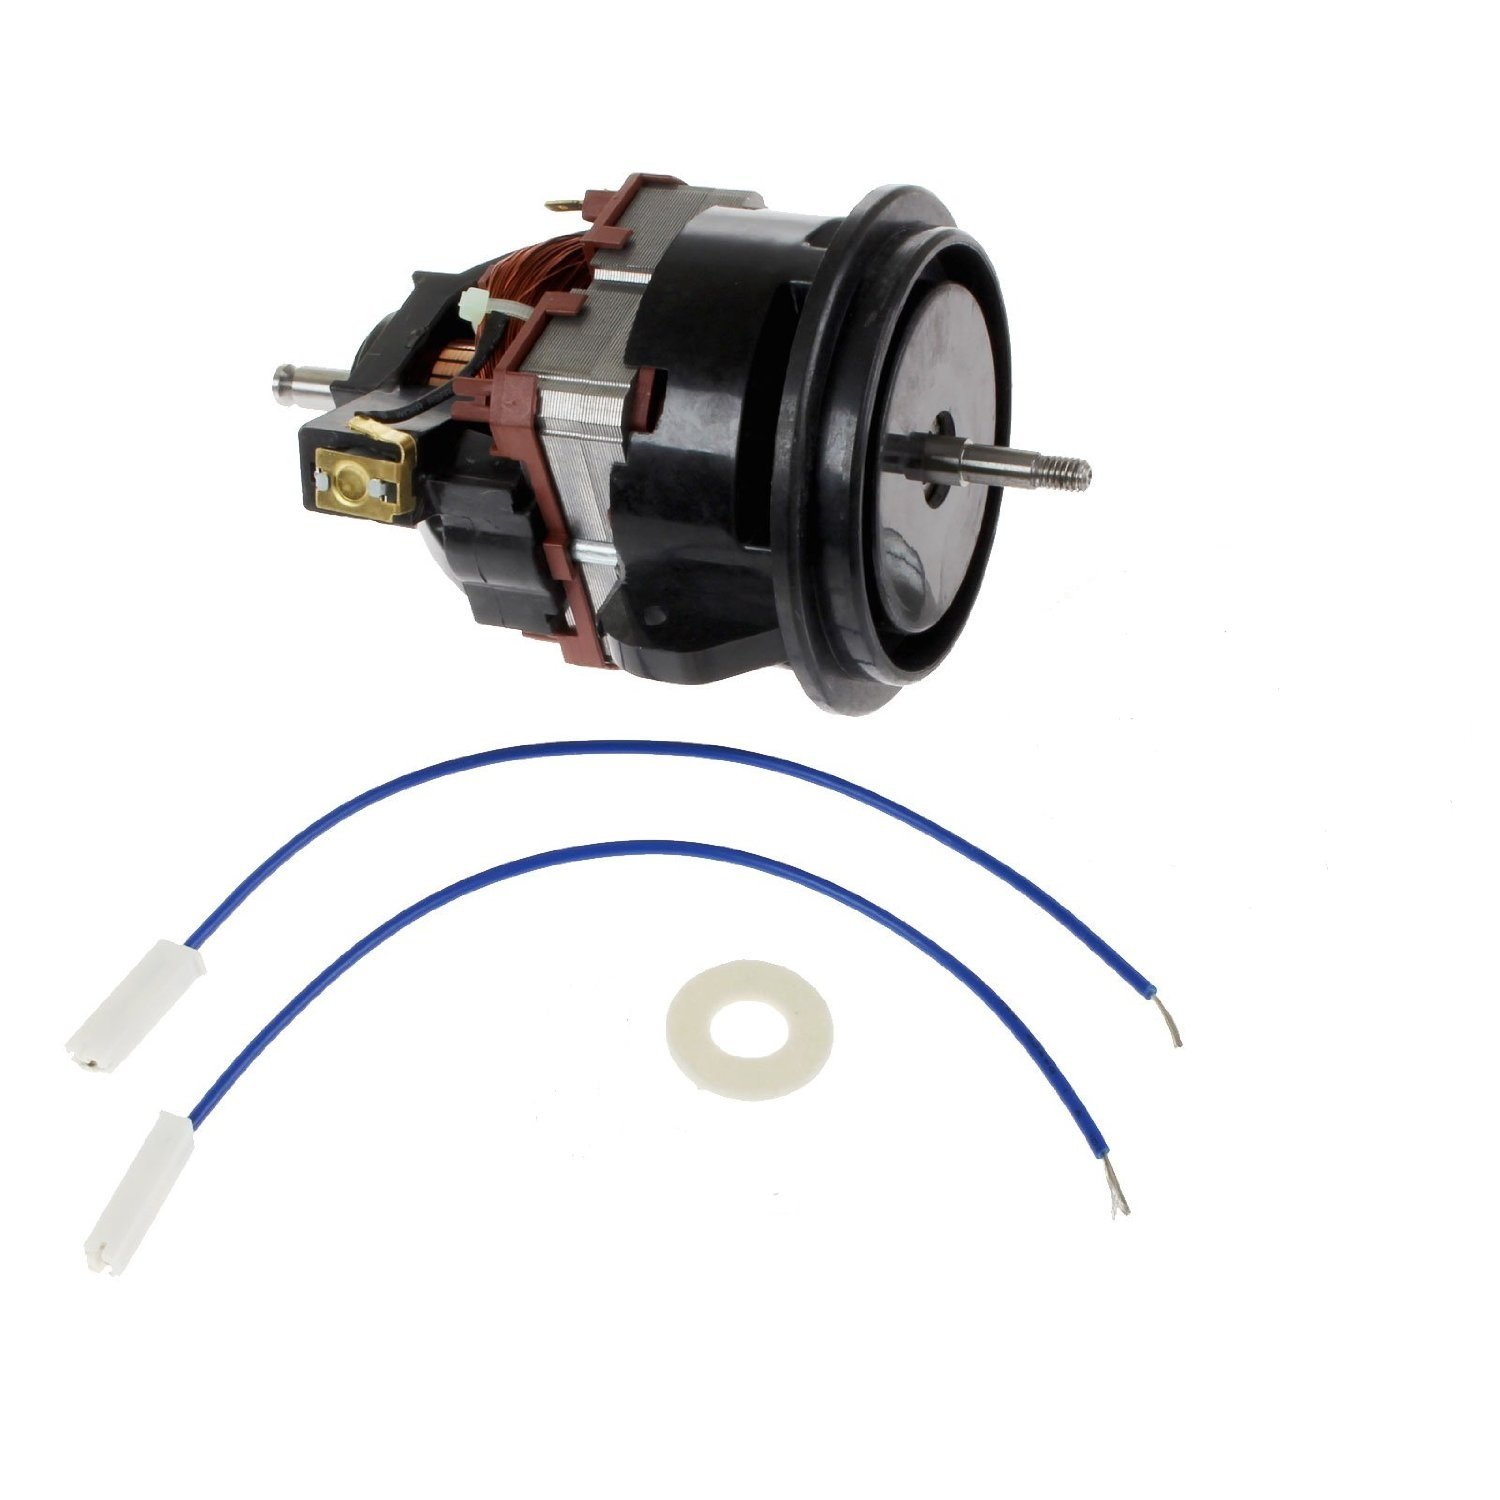 First4spares Replacement Oreck Motor 580w Kit For Wiring Diagram Xl Series Upright Vacuum Cleaners